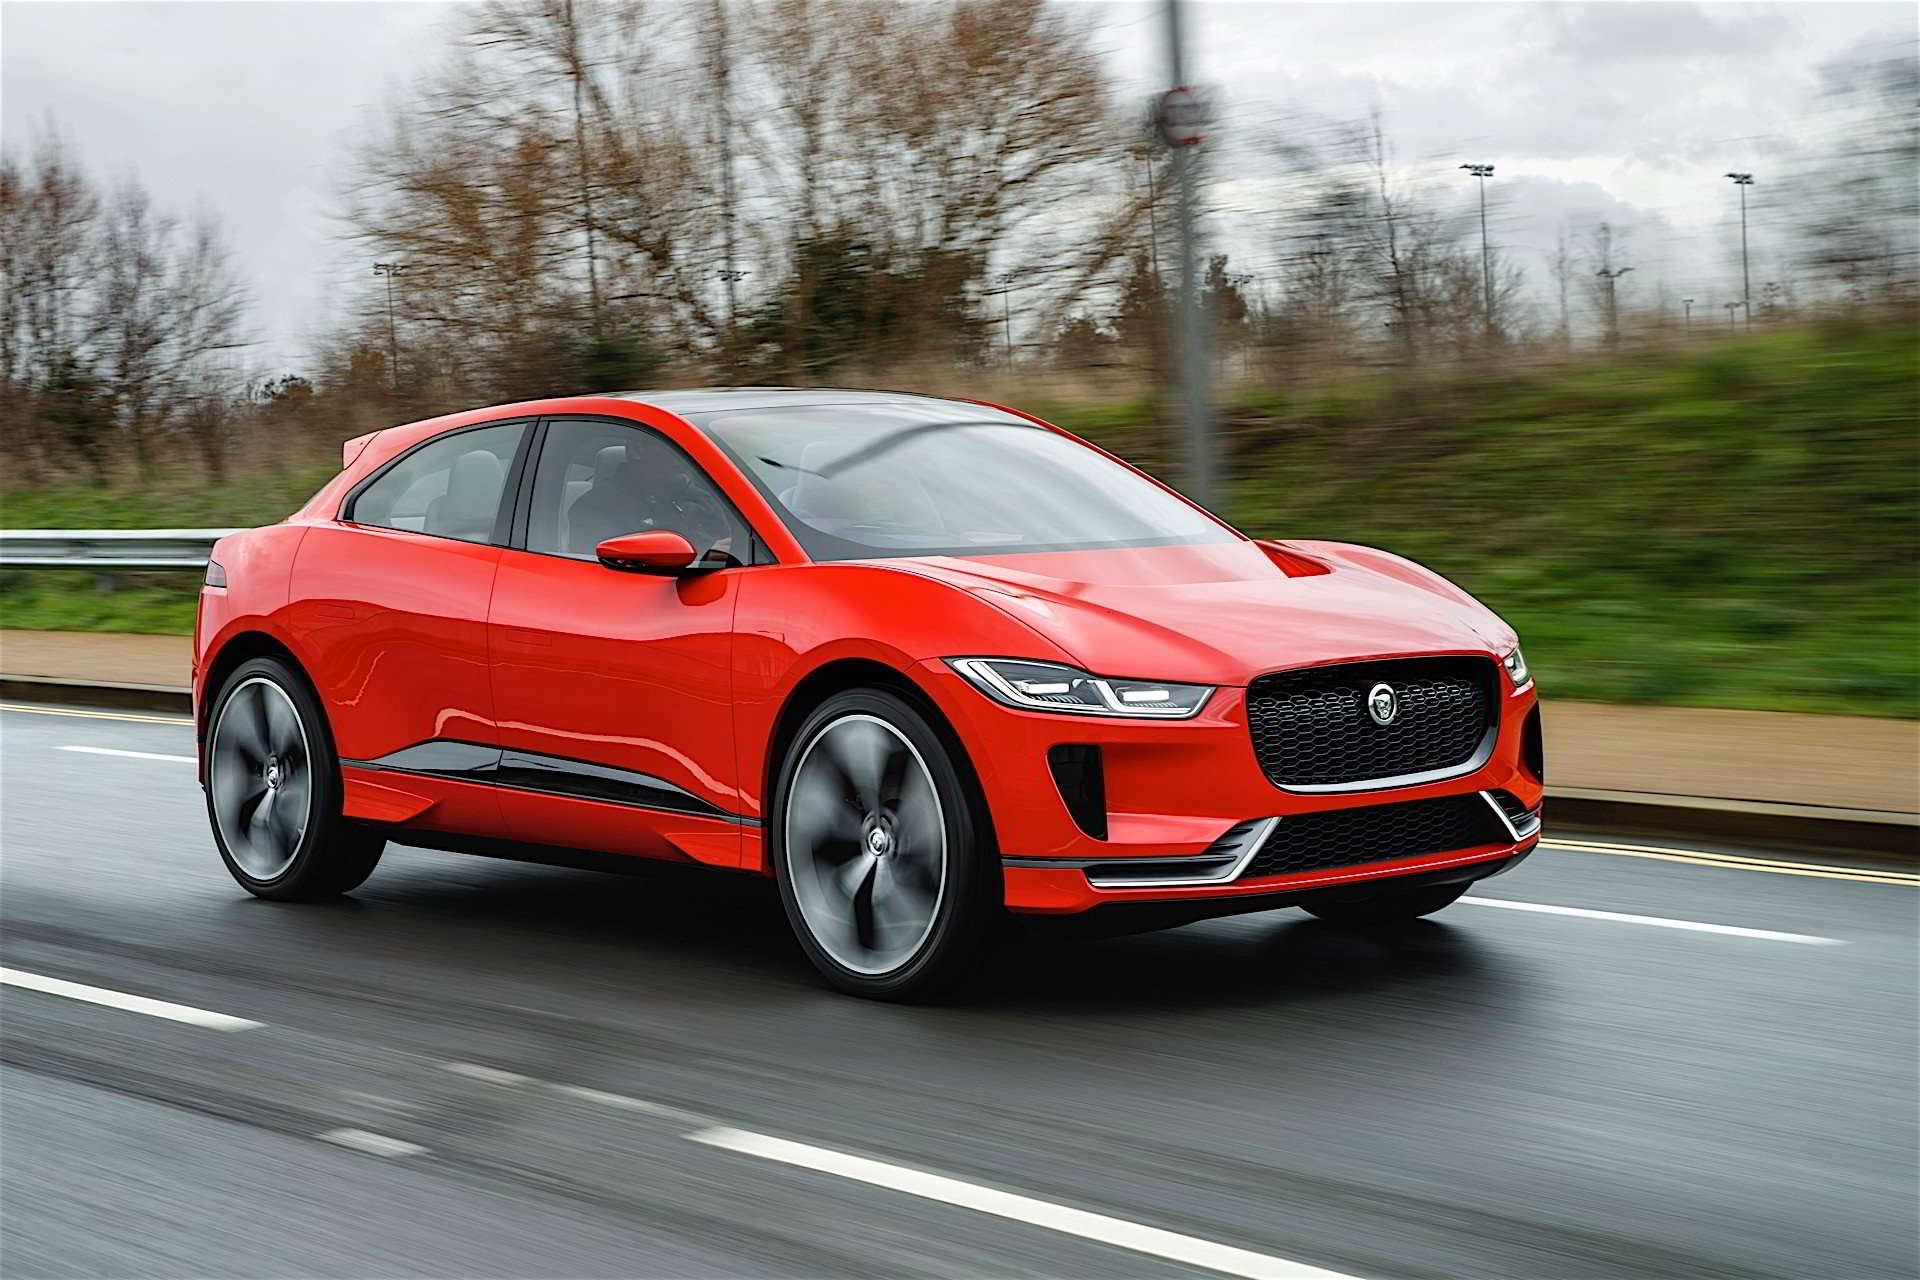 52 The 2019 Jaguar Xq Crossover Research New